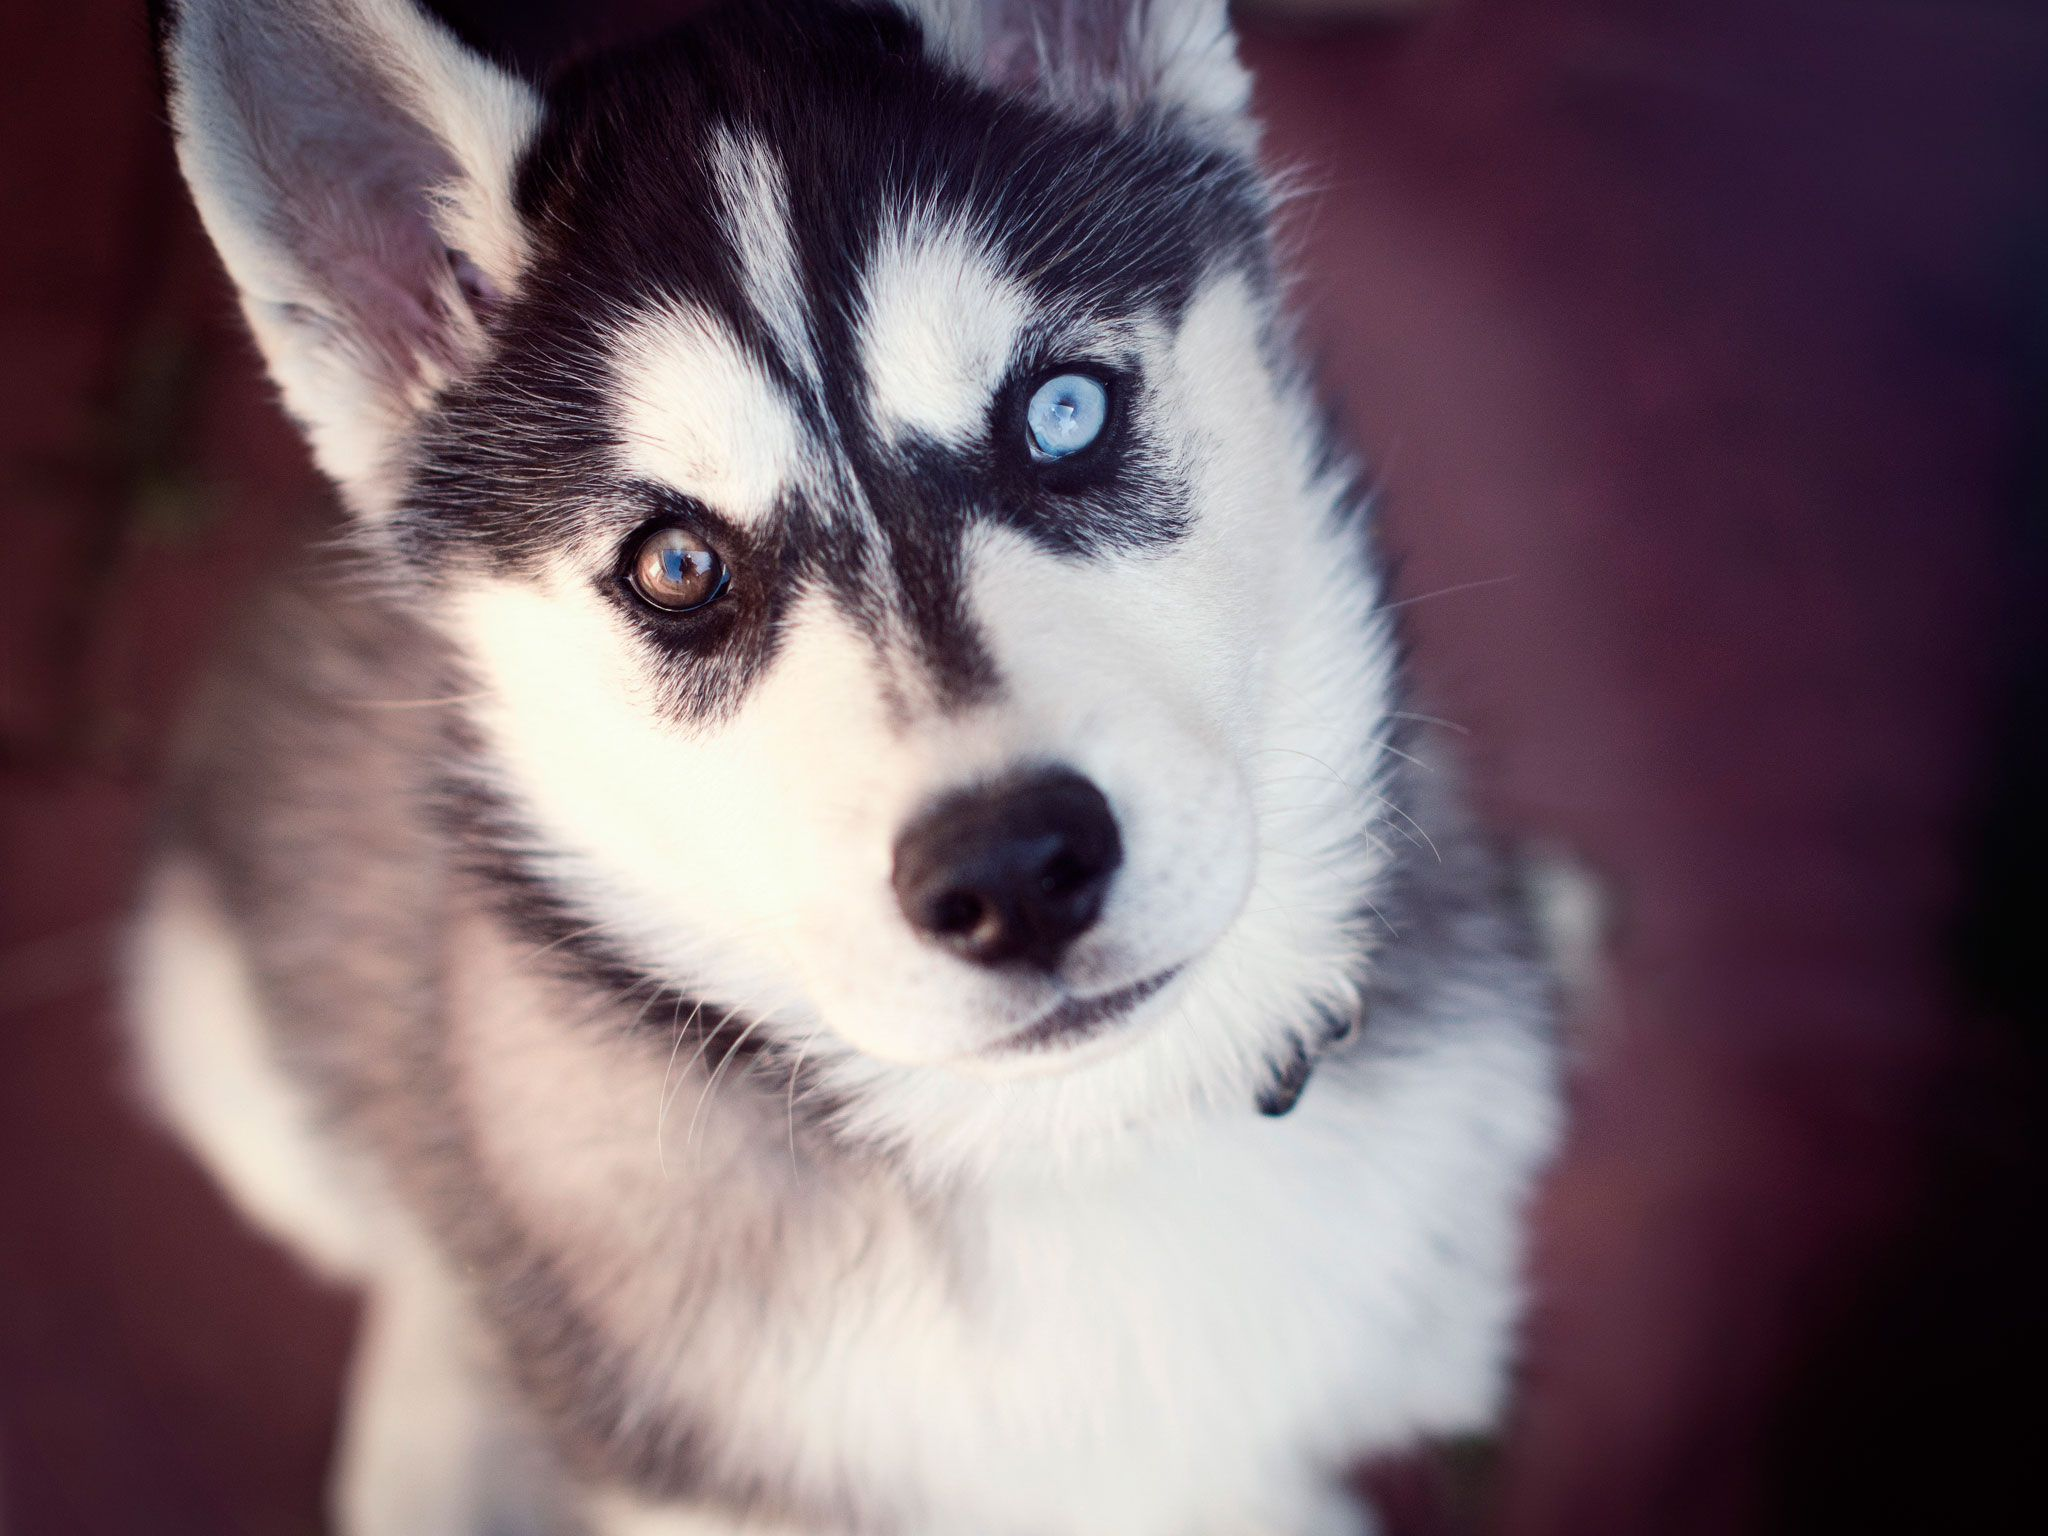 Two Eye Colors Image By Husky Siberian Husky With Blue Eyes